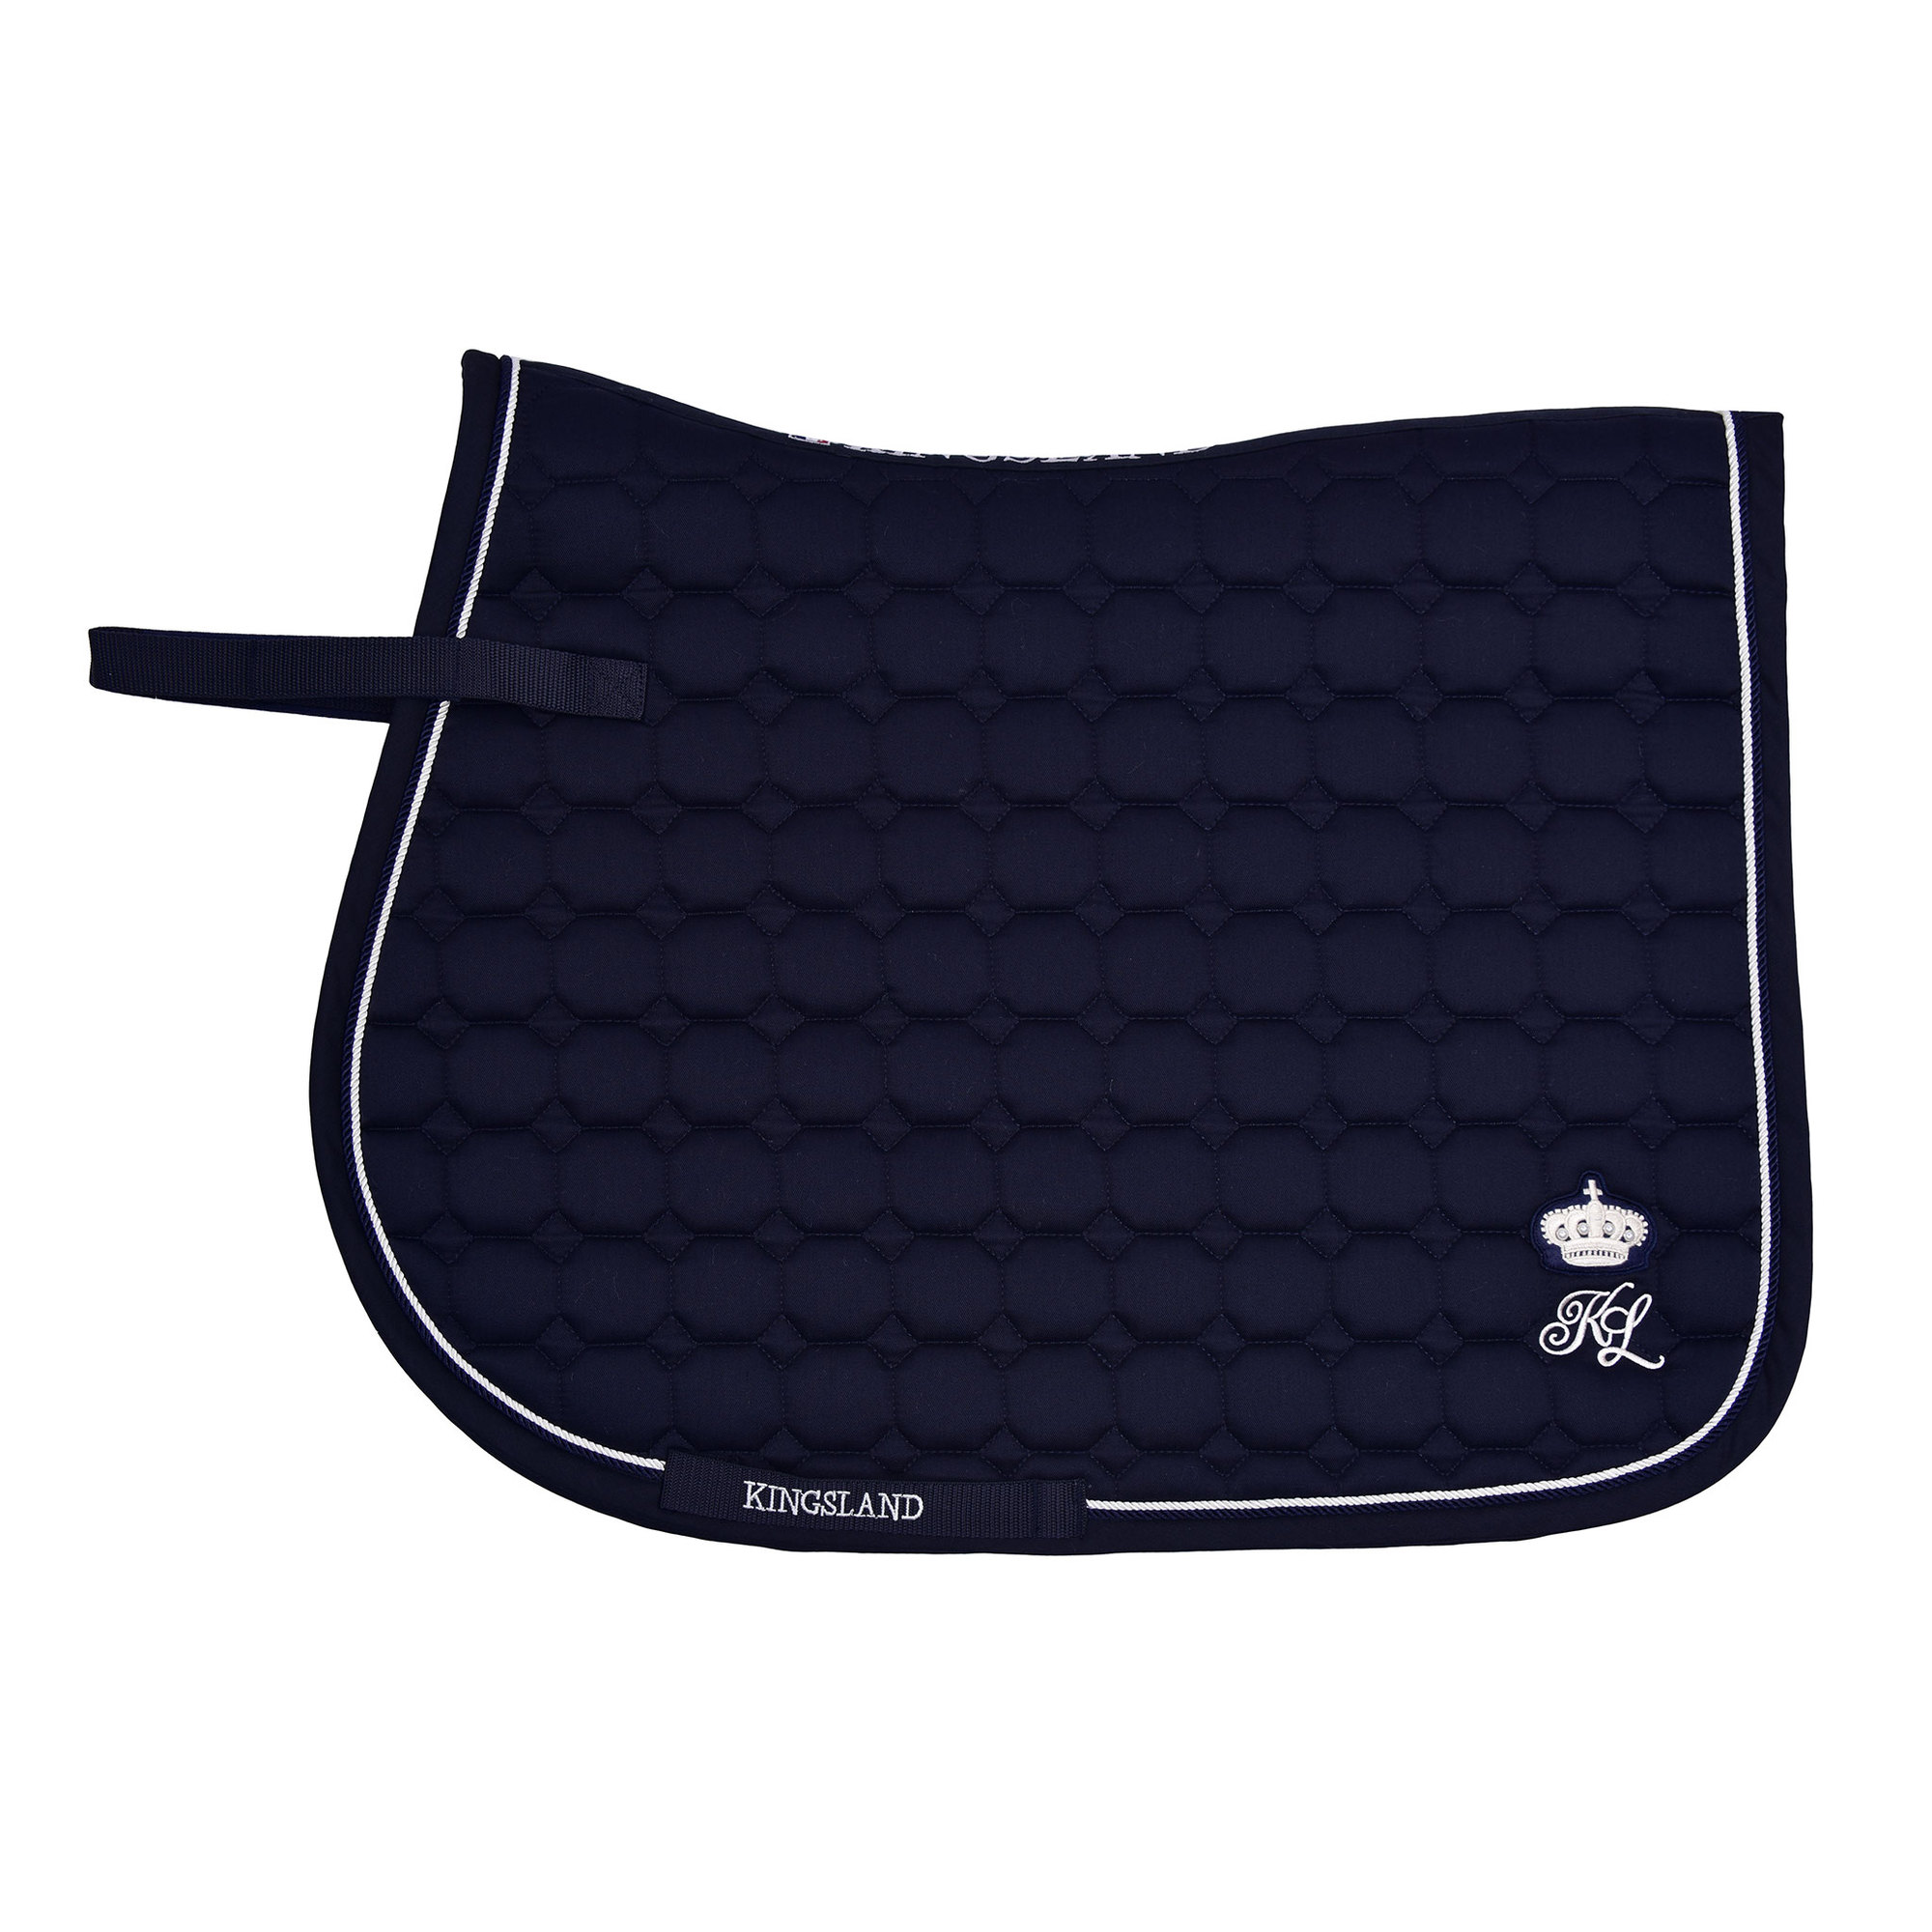 Kingsland Modock Saddle Pad Navy Dressage 1